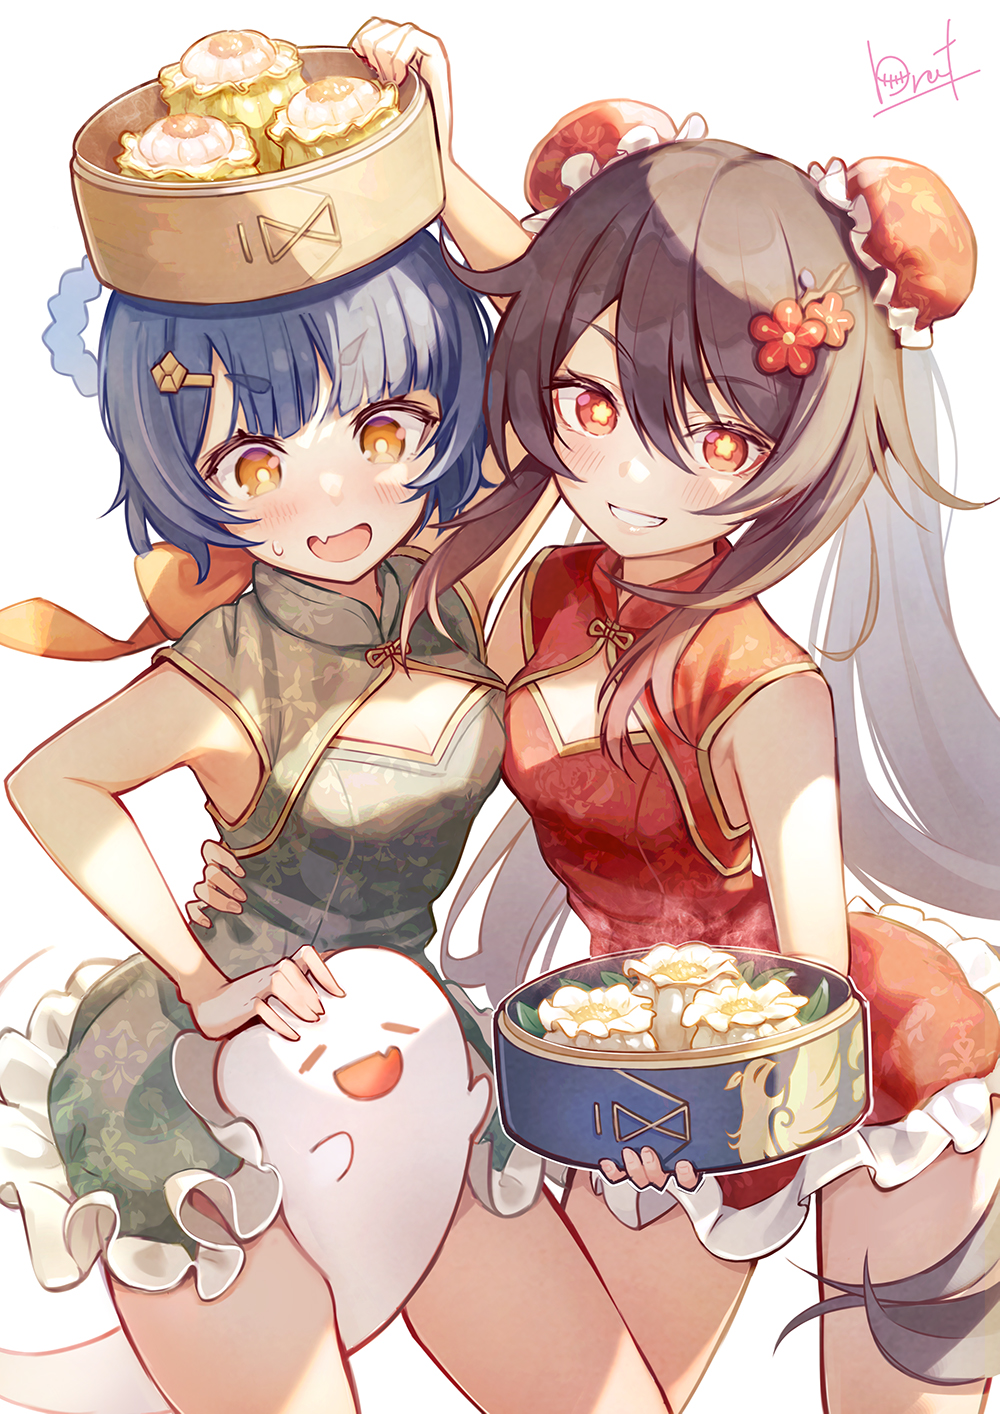 2girls bamboo_steamer bangs bare_shoulders blue_hair blush brat breasts brown_hair bun_cover china_dress chinese_clothes dim_sum double_bun dress genshin_impact ghost green_dress grin hair_ornament hair_rings hairclip highres hu_tao long_hair looking_at_viewer multiple_girls open_mouth red_dress red_eyes short_hair sleeveless sleeveless_dress small_breasts smile symbol-shaped_pupils thighs twintails very_long_hair xiangling_(genshin_impact) yellow_eyes